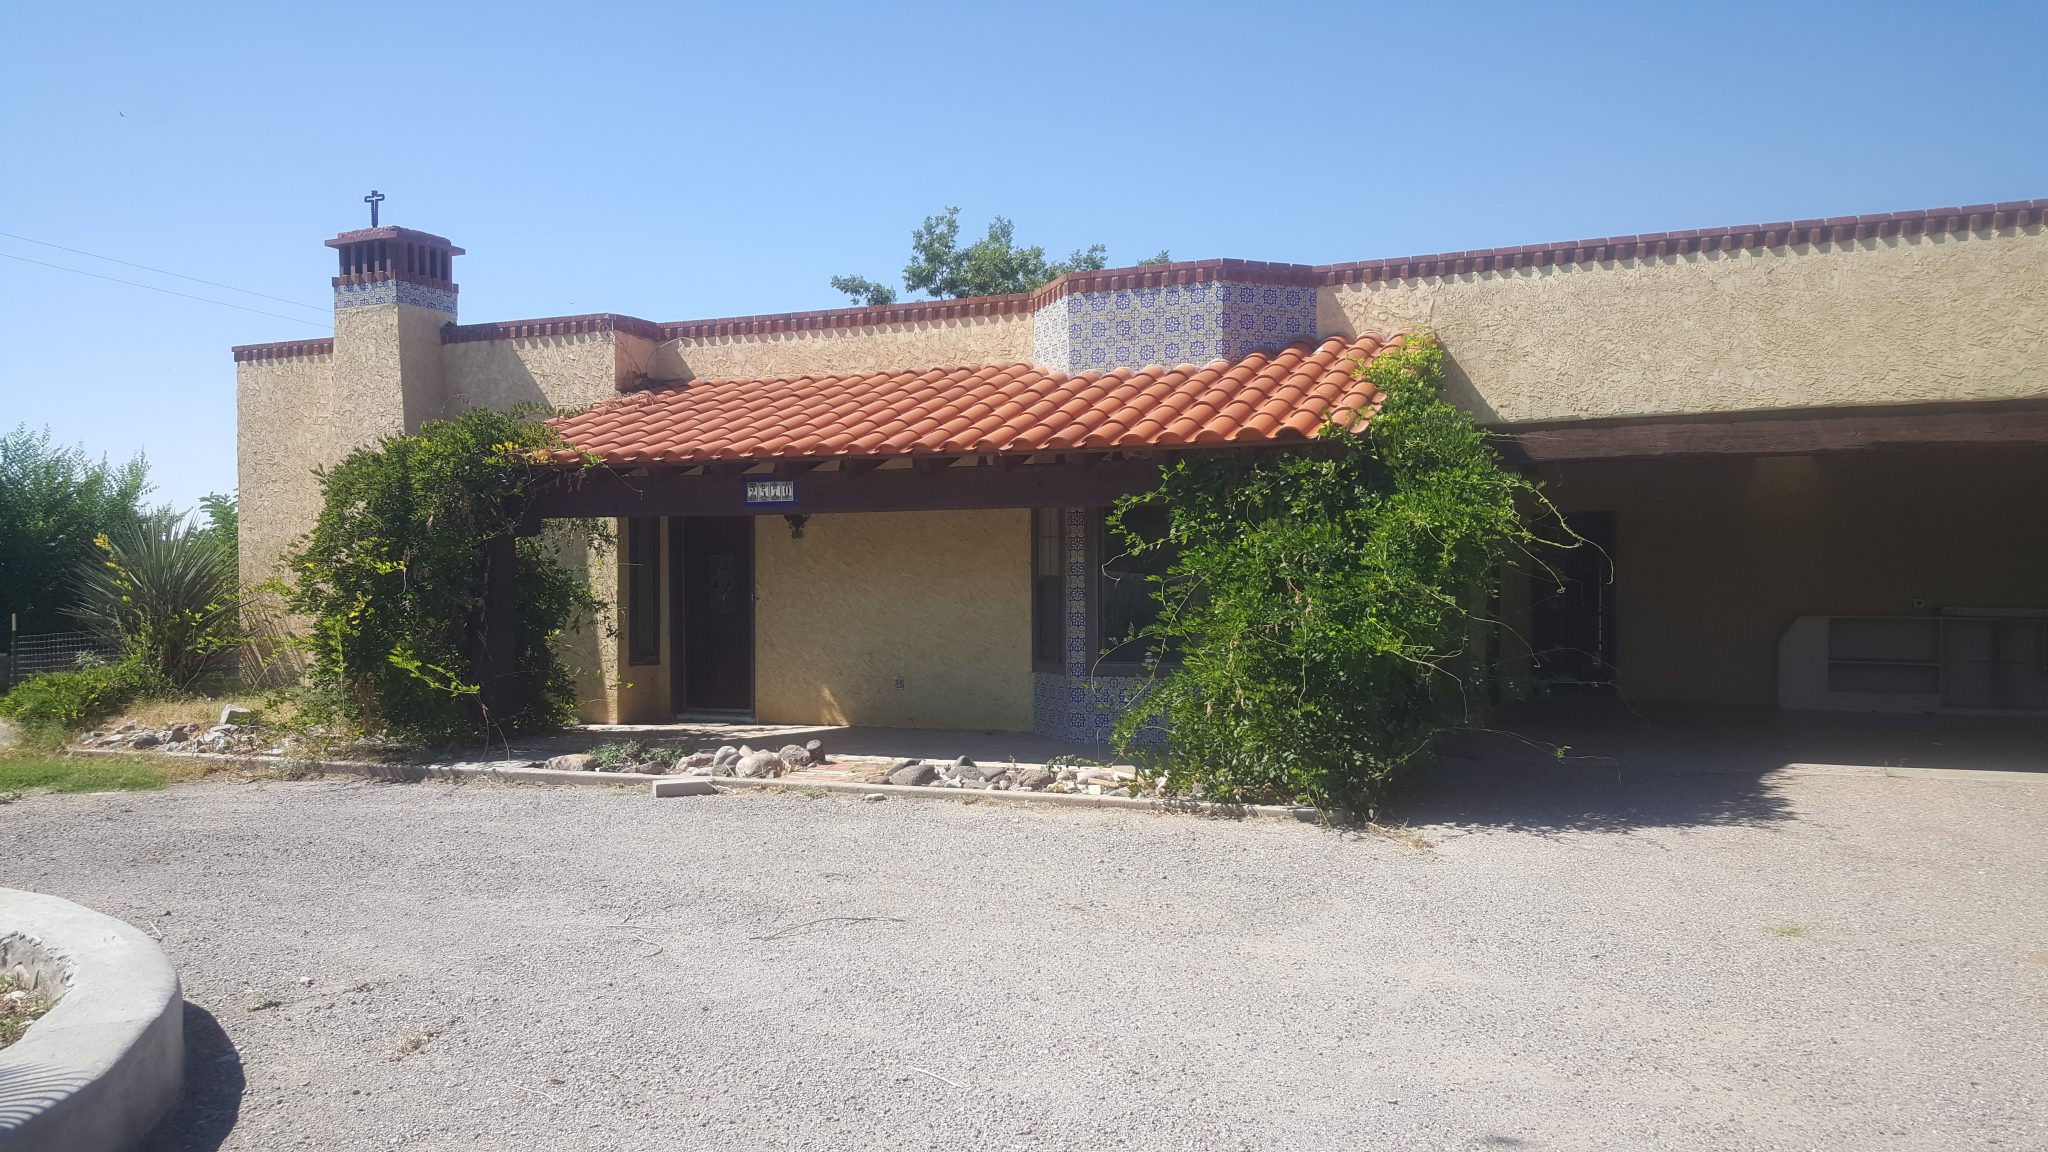 2570 Apodaca Rd., Las Cruces, NM  88005